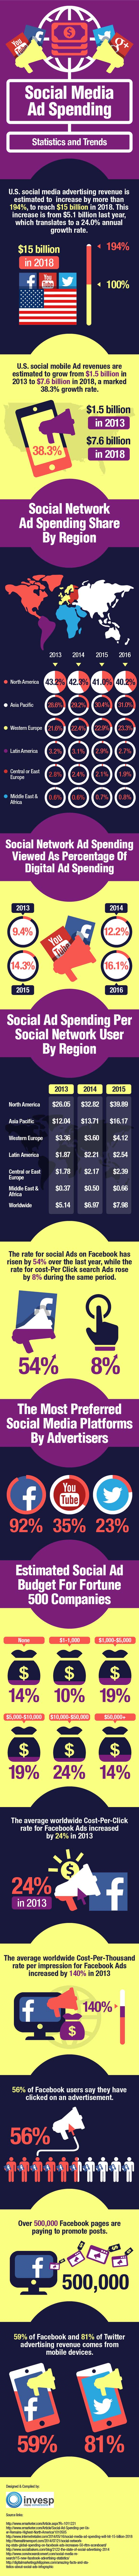 Social Media Ad Spending  Statistics and Trends